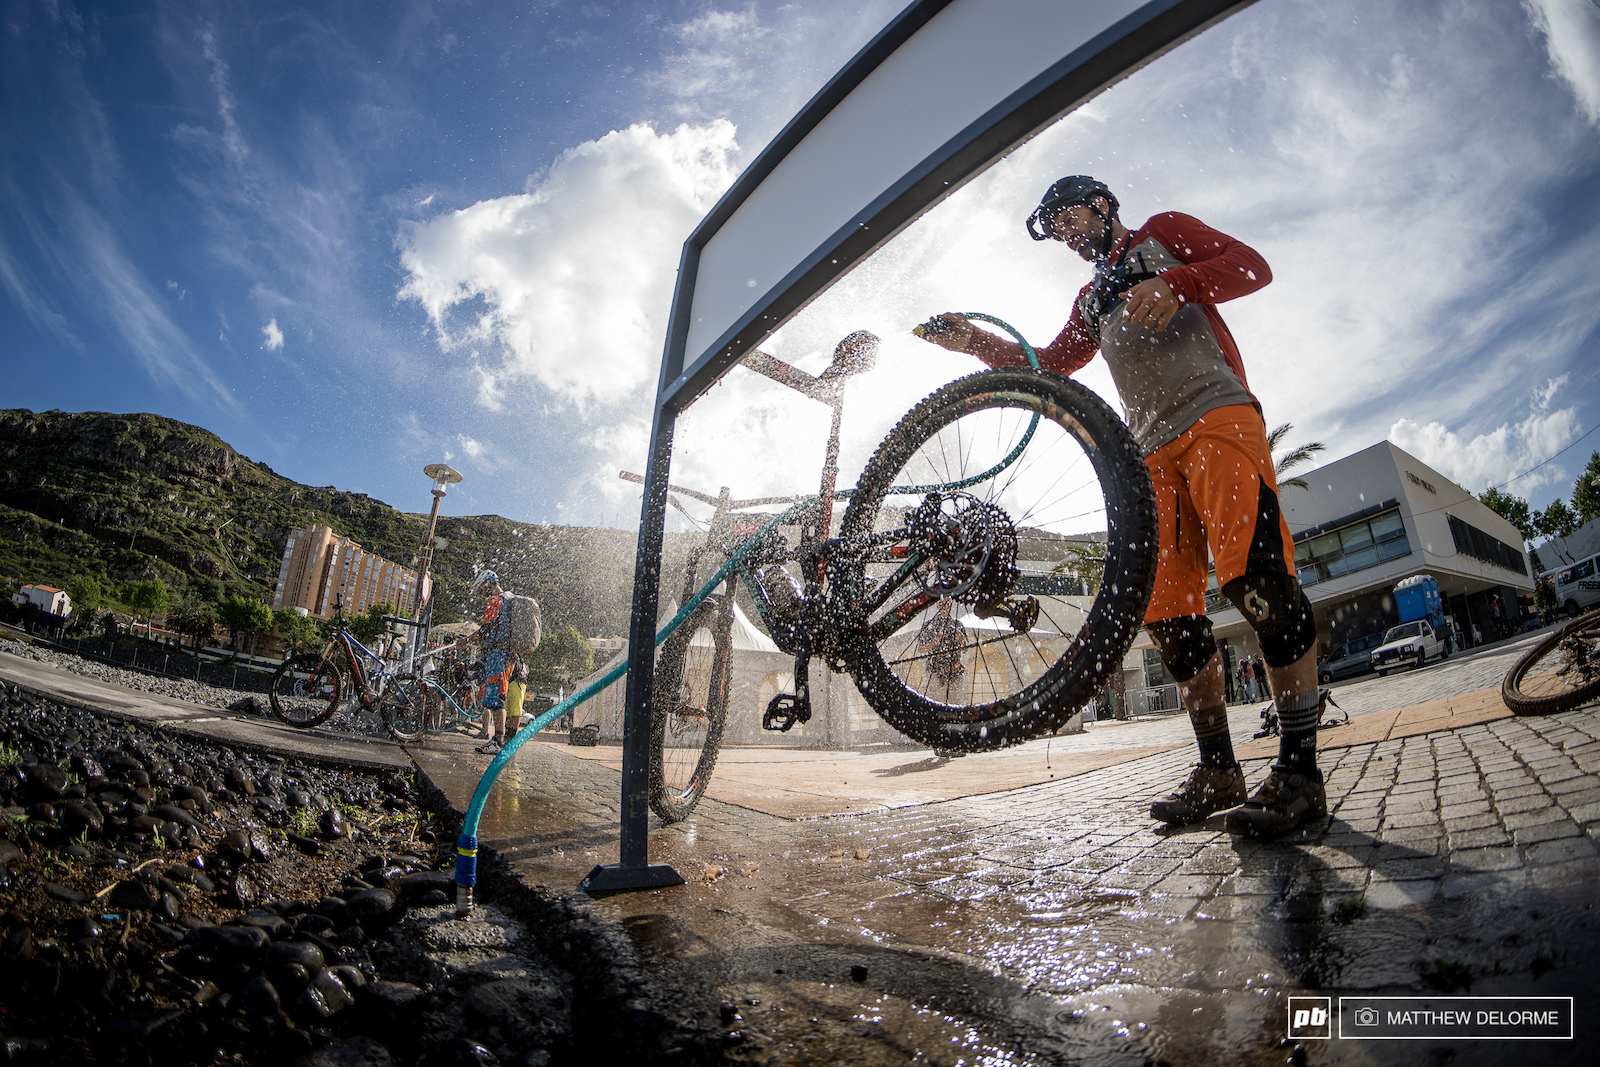 The bike washes will be incredibly busy if the top side weather keeps it up.